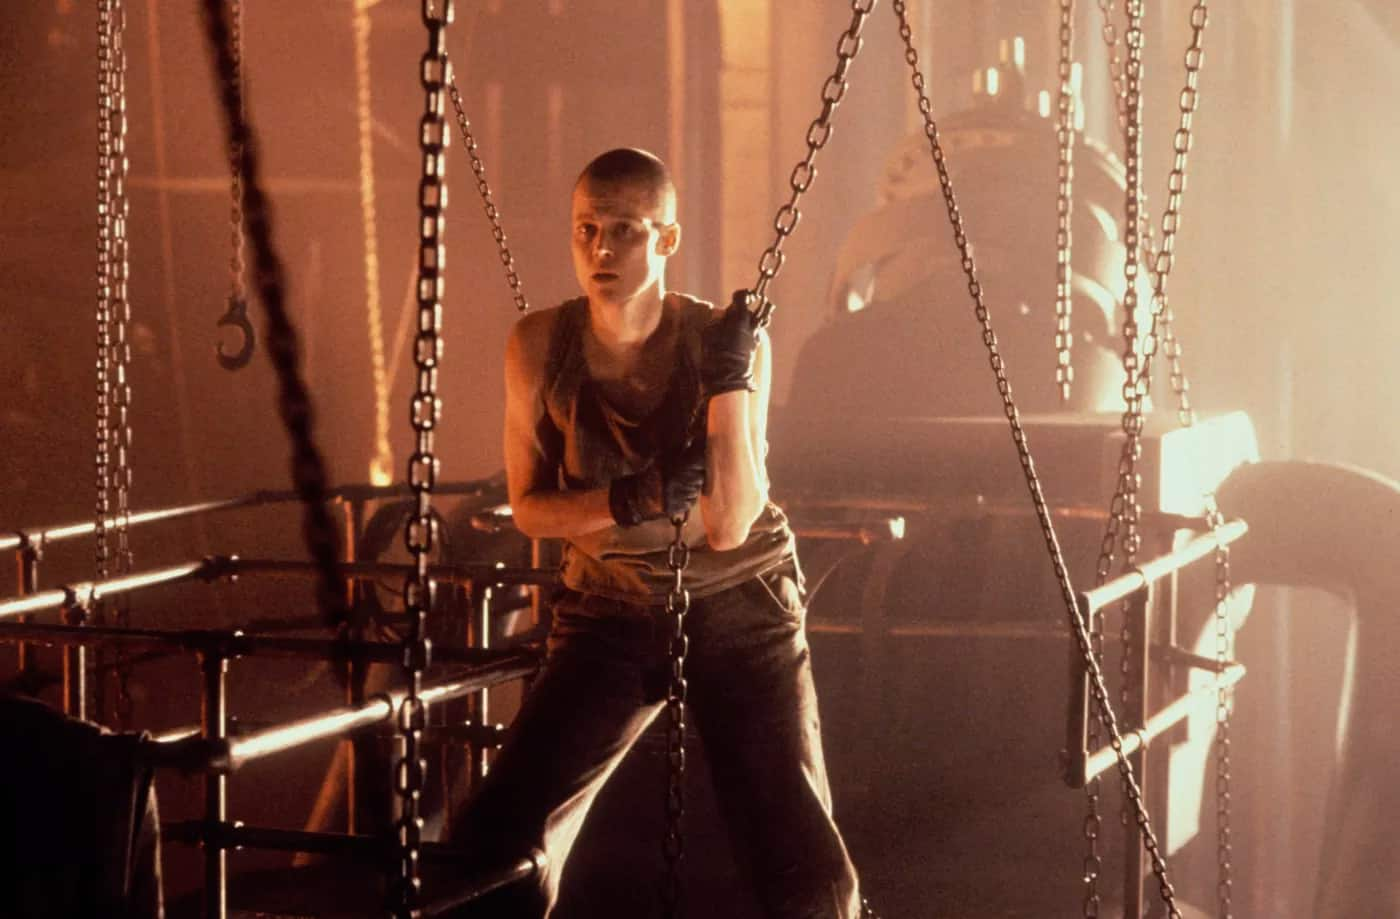 Alien 3 nihilism makes it a unique and fitting franchise entry